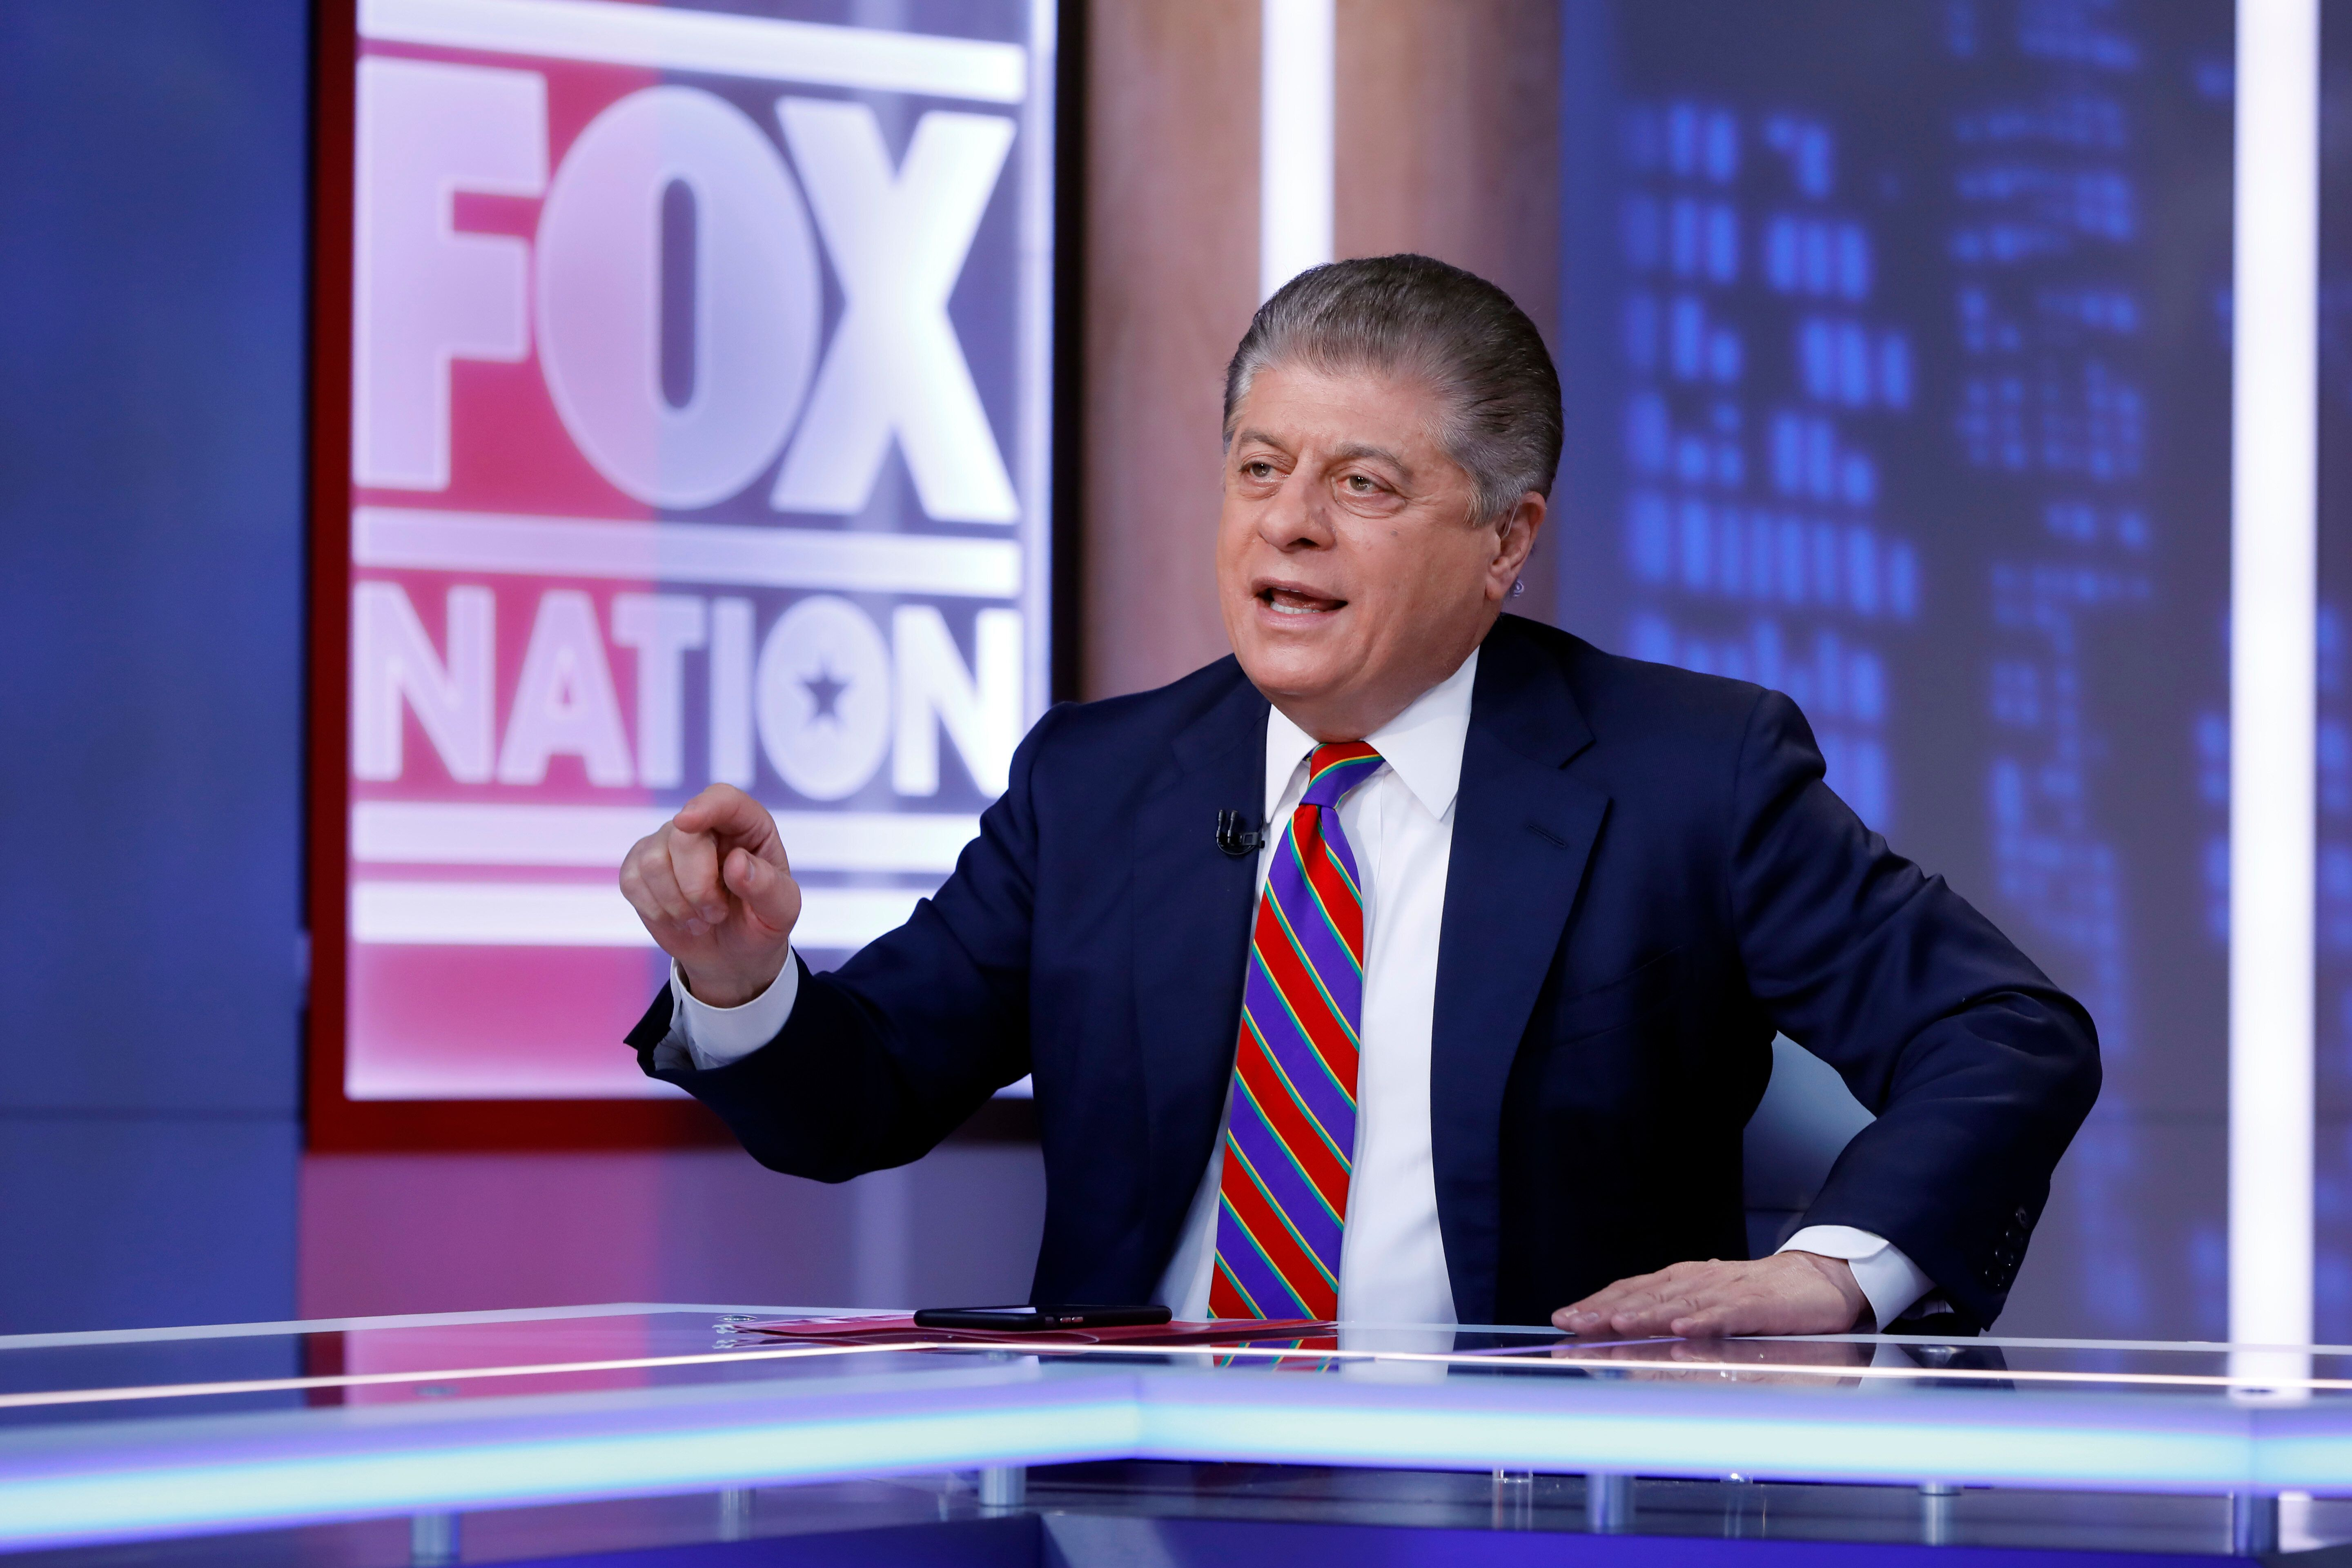 """Fox News senior judicial analyst Andrew Napolitano hosts the inaugural broadcast of """"Liberty File"""" on the new streaming service Fox Nation, in New York, Tuesday, Nov. 27, 2018. Fox is becoming the latest television news operation to stake out digital turf. Rather than an attempt to seek out young cord-cutters, Fox Nation is a subscription-based service designed to complement Fox News Channel. (AP Photo/Richard Drew)"""